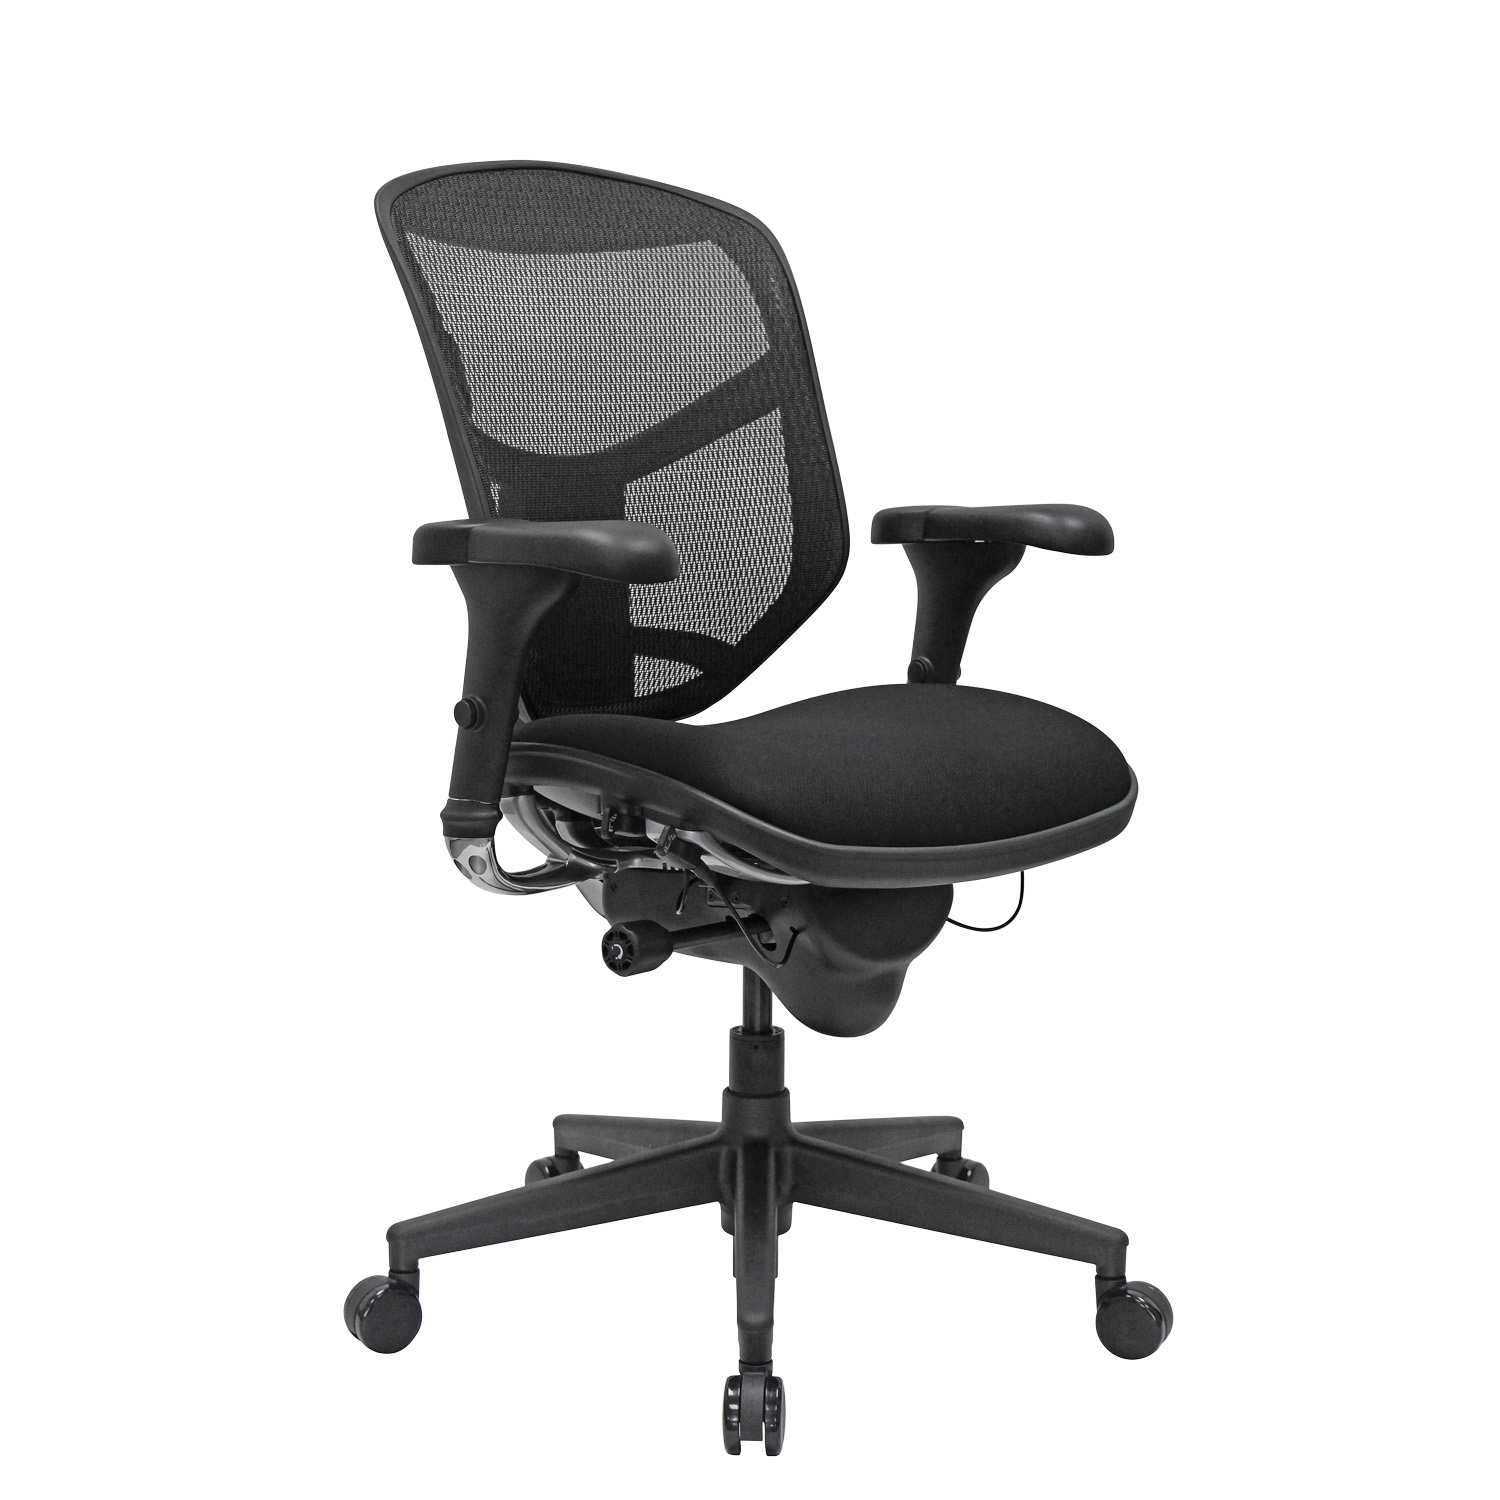 Workpro Commercial Mesh Back Executive Chair Workpro Pro Quantum 9000 Series Ergonomic Mesh Mid Back